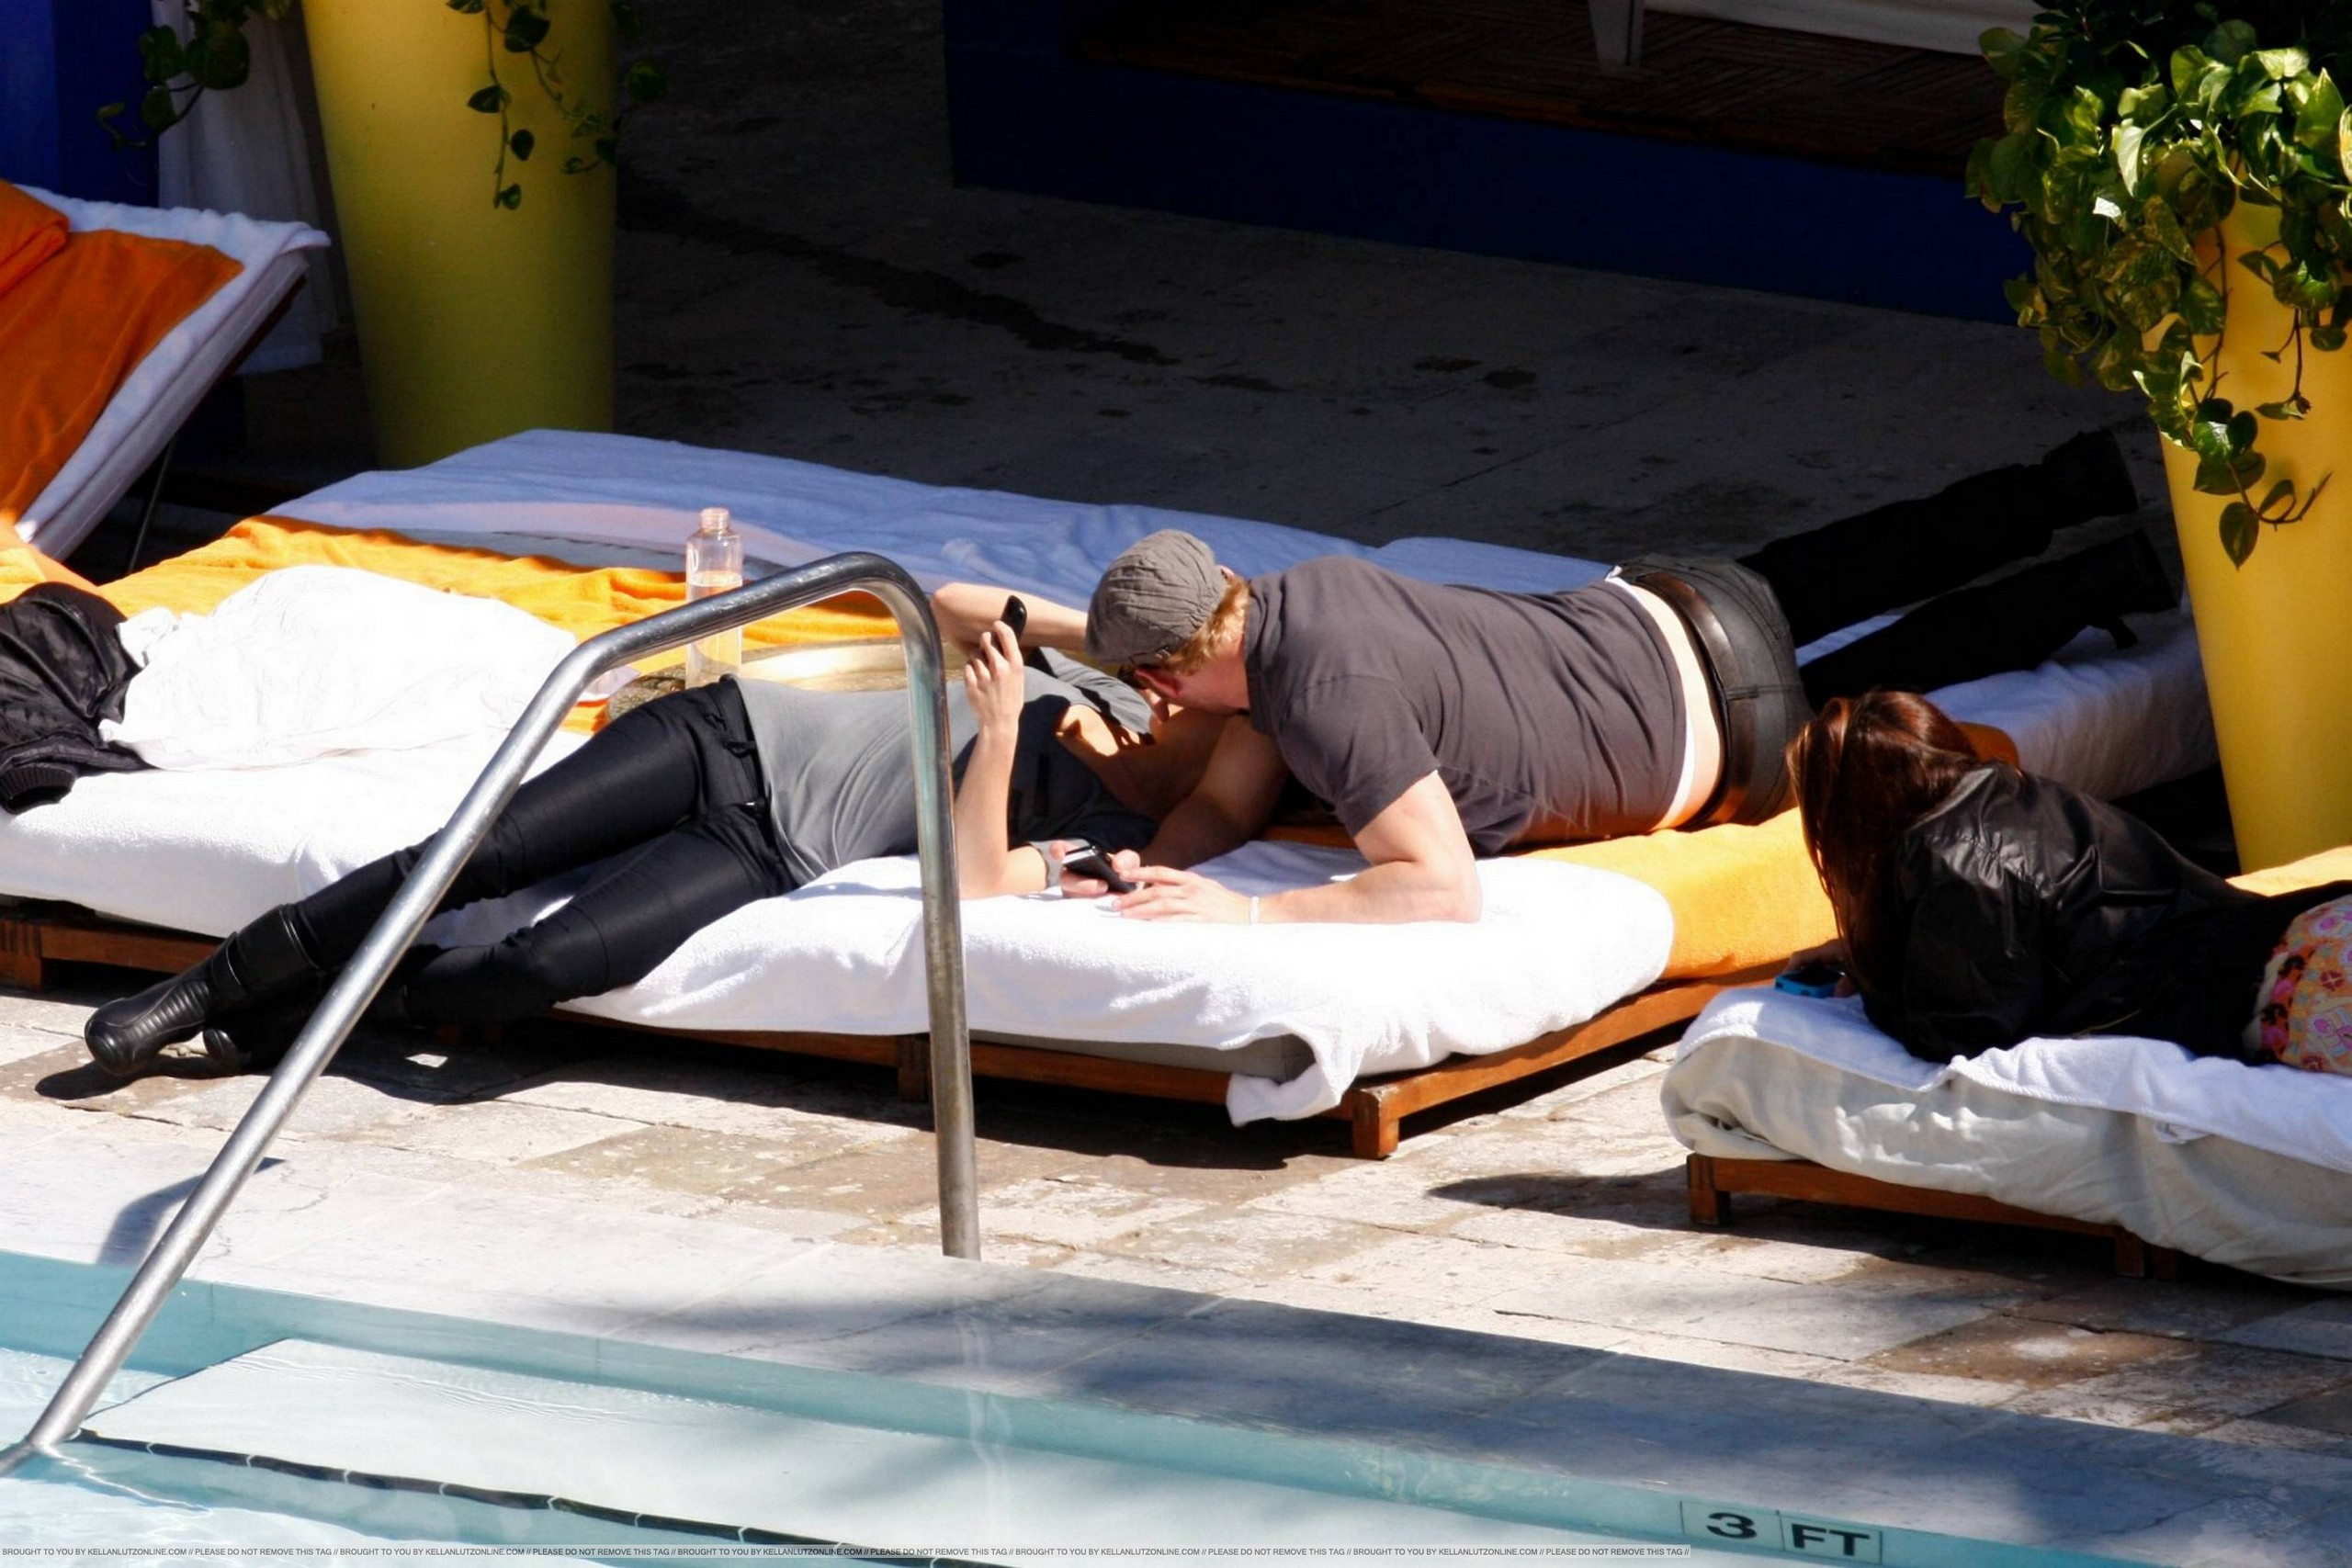 Kellan Lutz In Miami - 06 Feb 2010